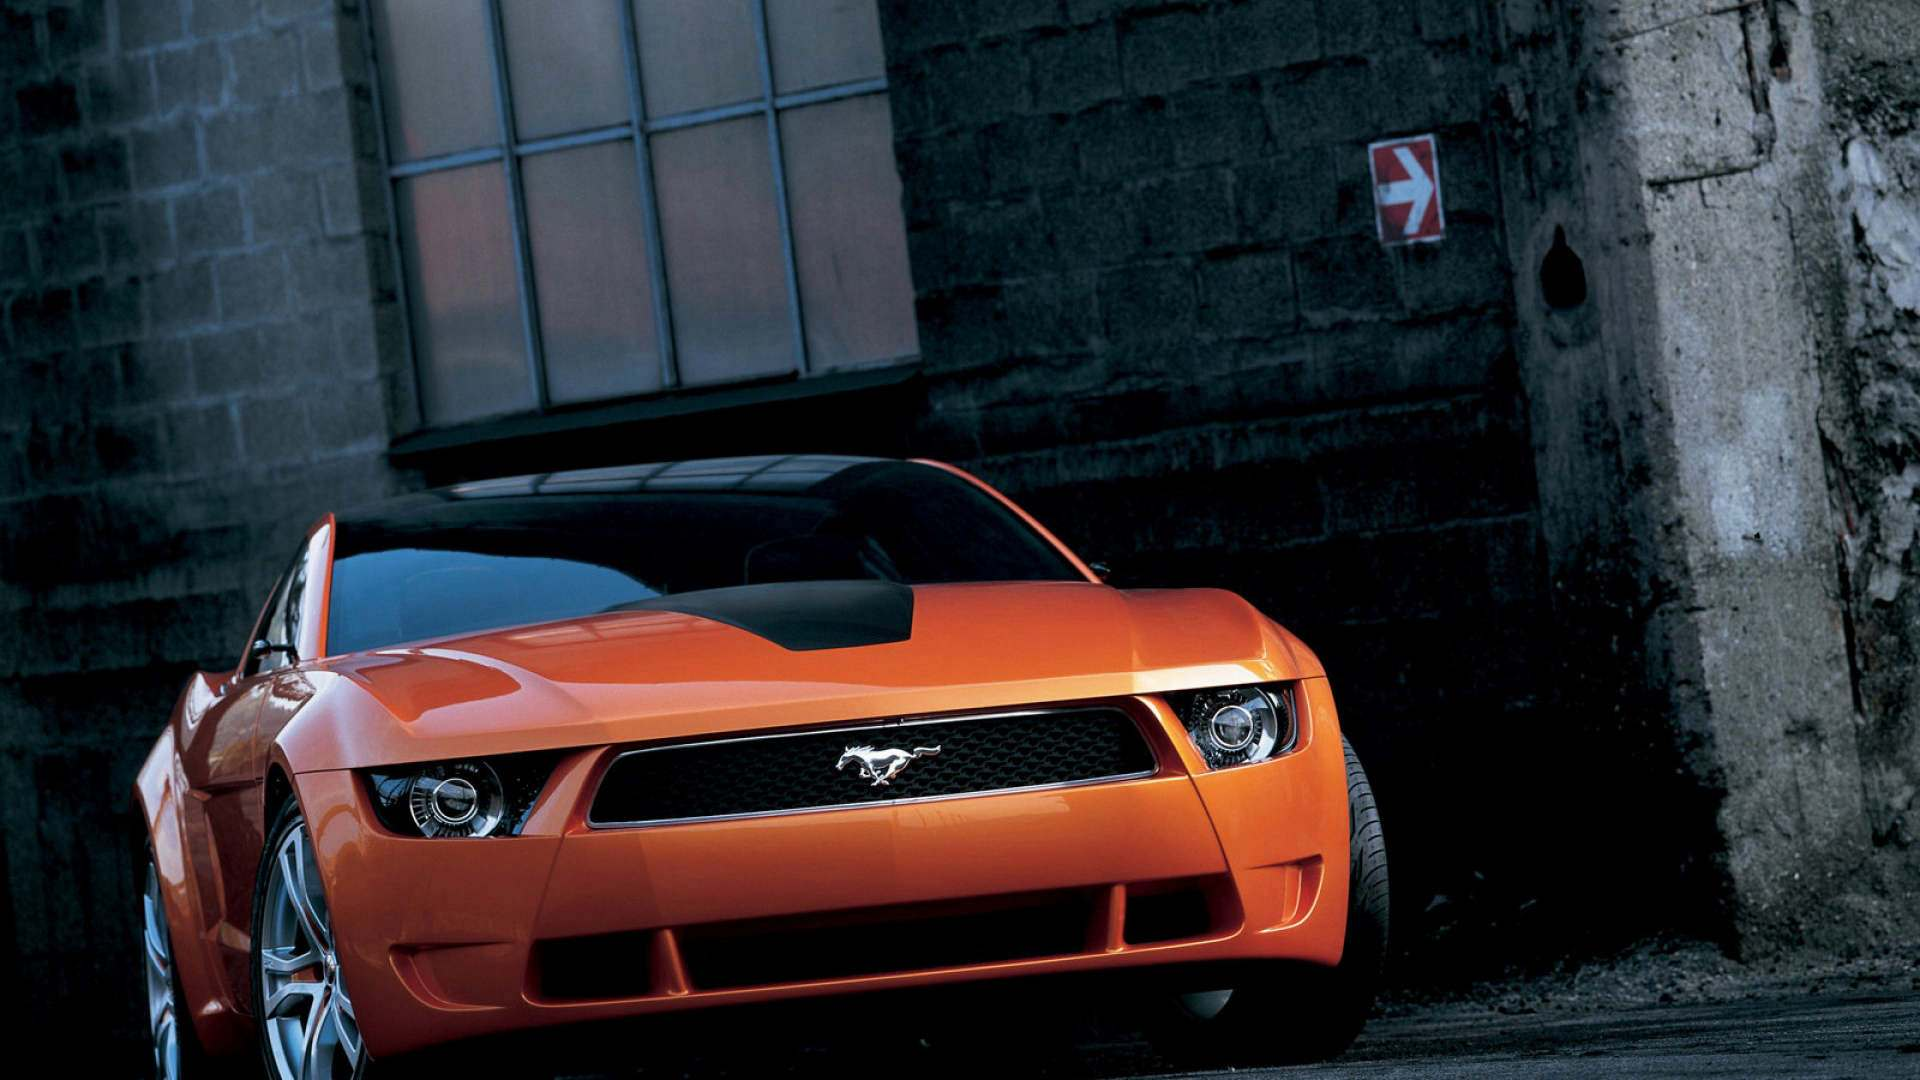 Ford Cars Hd Wallpapers Best Wallpaper